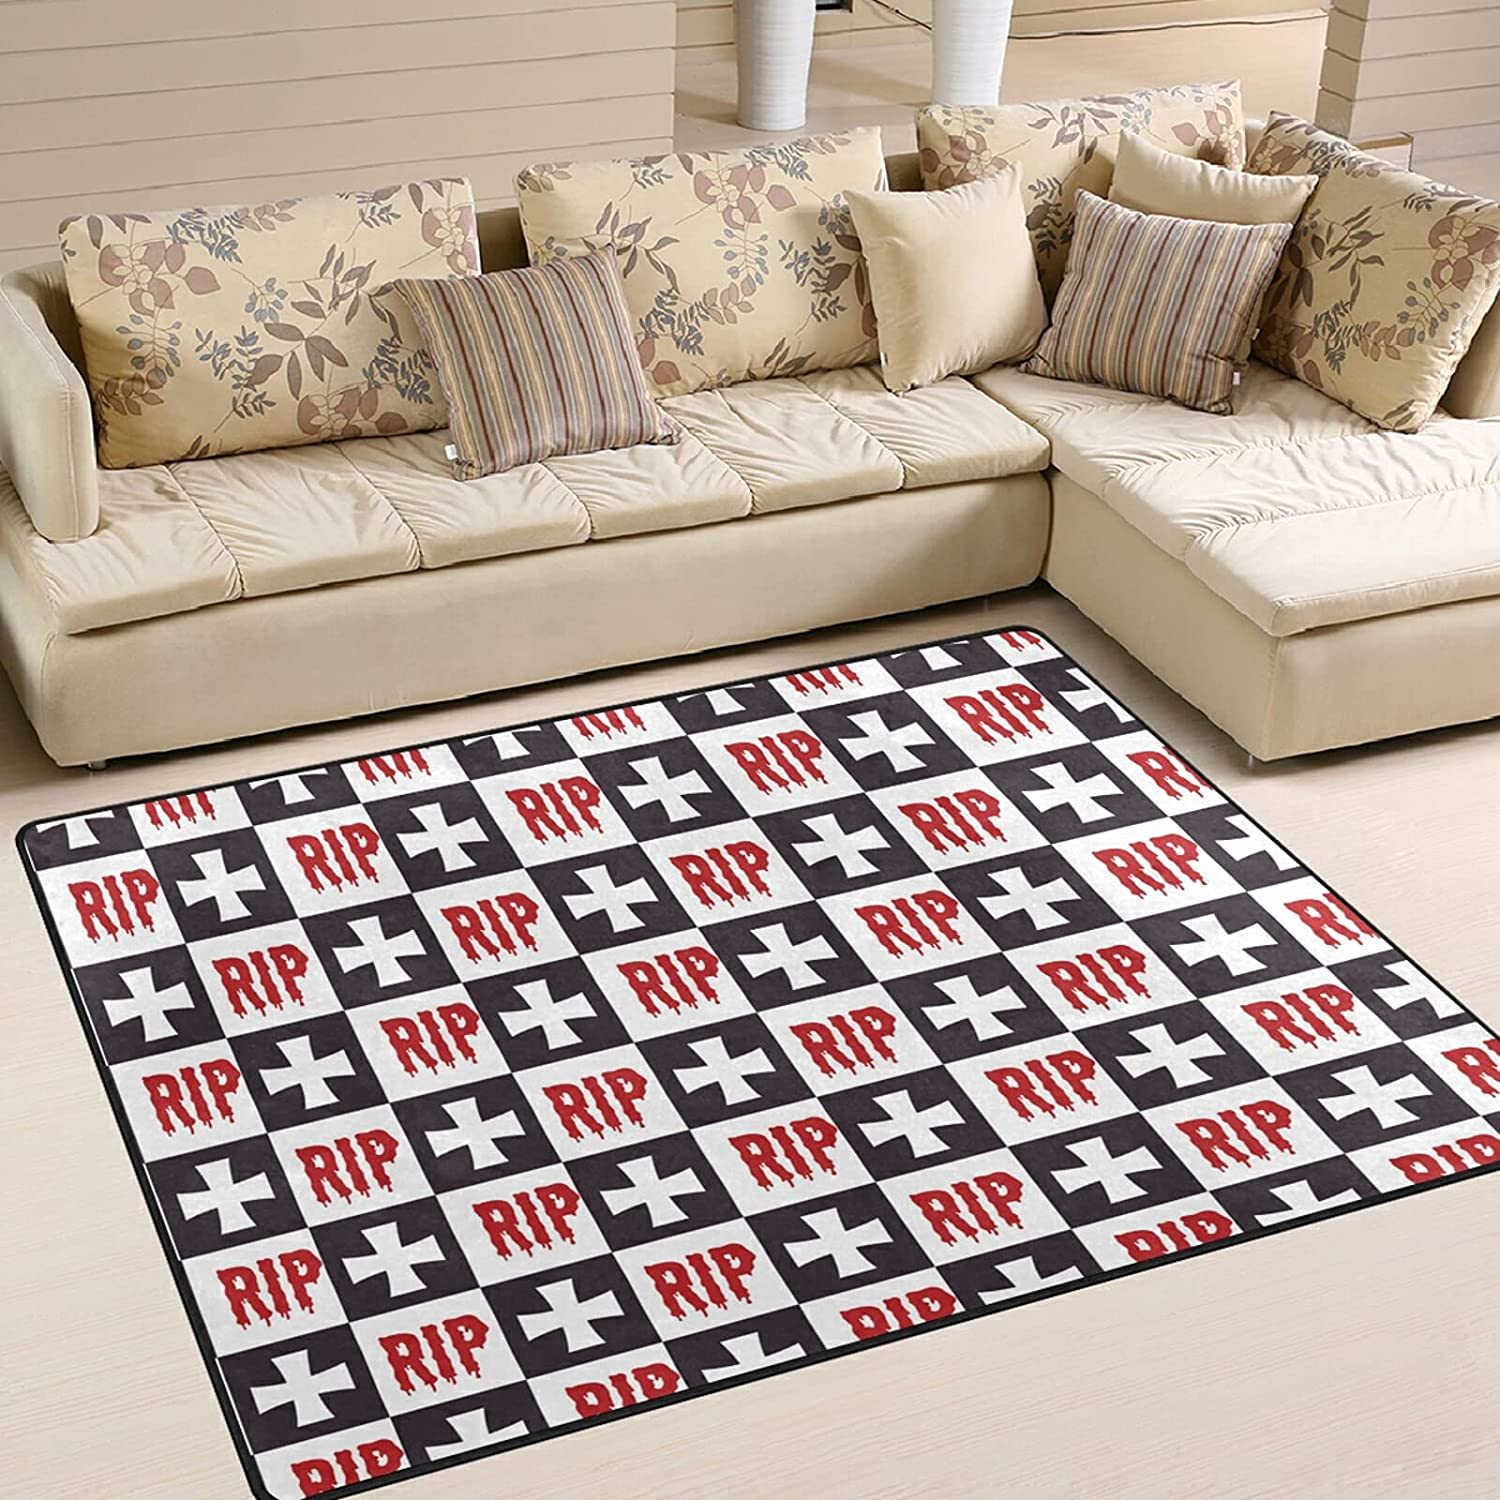 Modern Area Our shop most popular Rugs 5x7 Washable - Plaid Ghost Check Max 79% OFF Buffalo Hallow